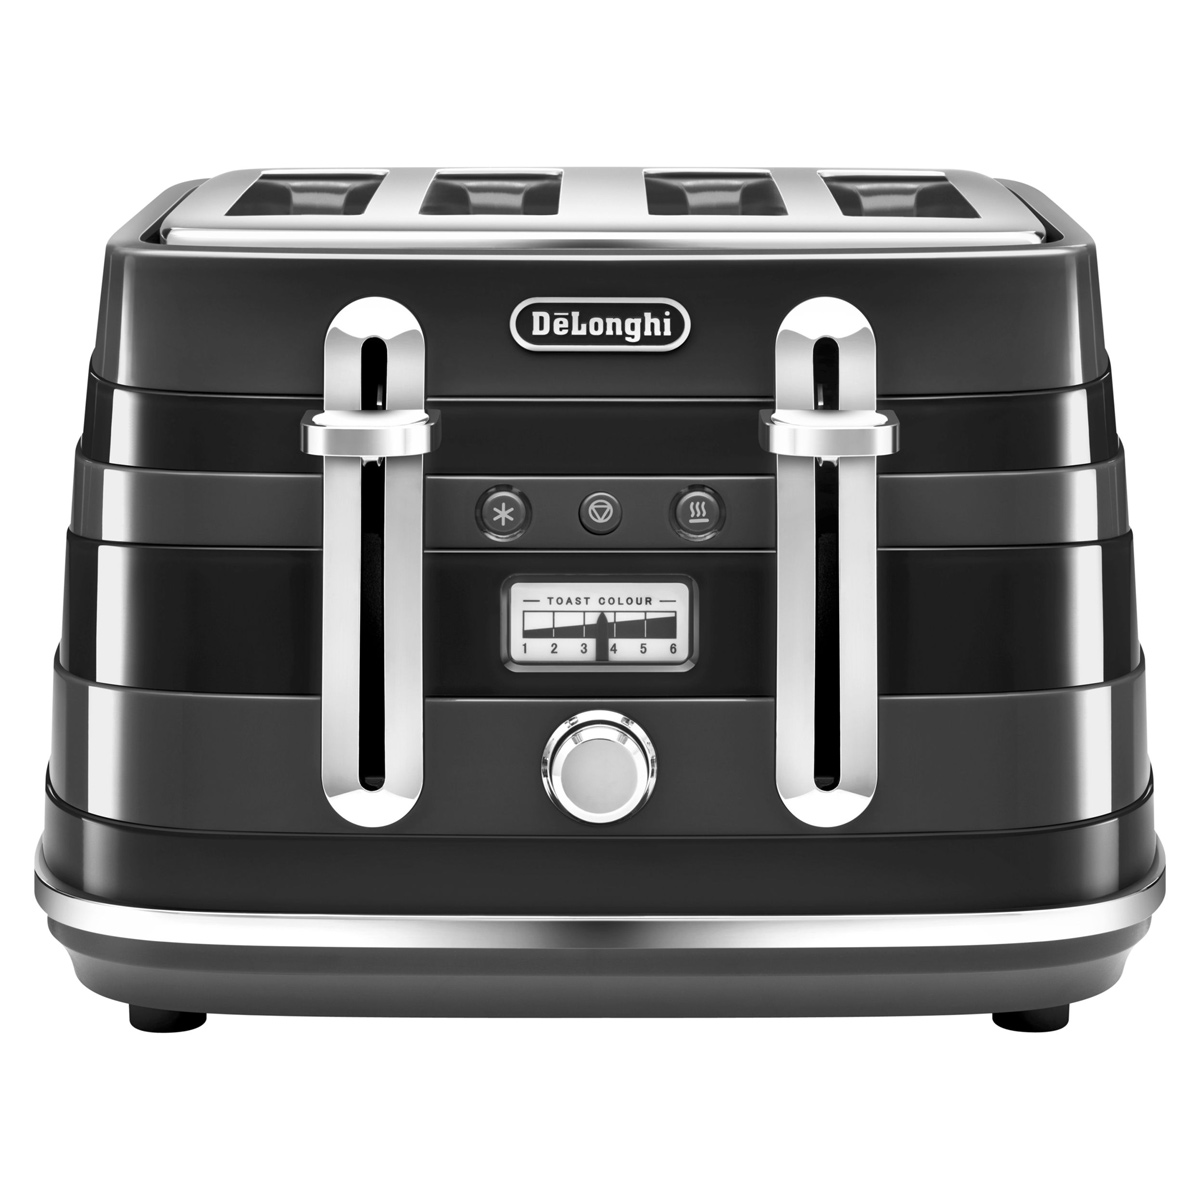 slot kitchen slice toaster wayfair long reviews pdx oster tabletop